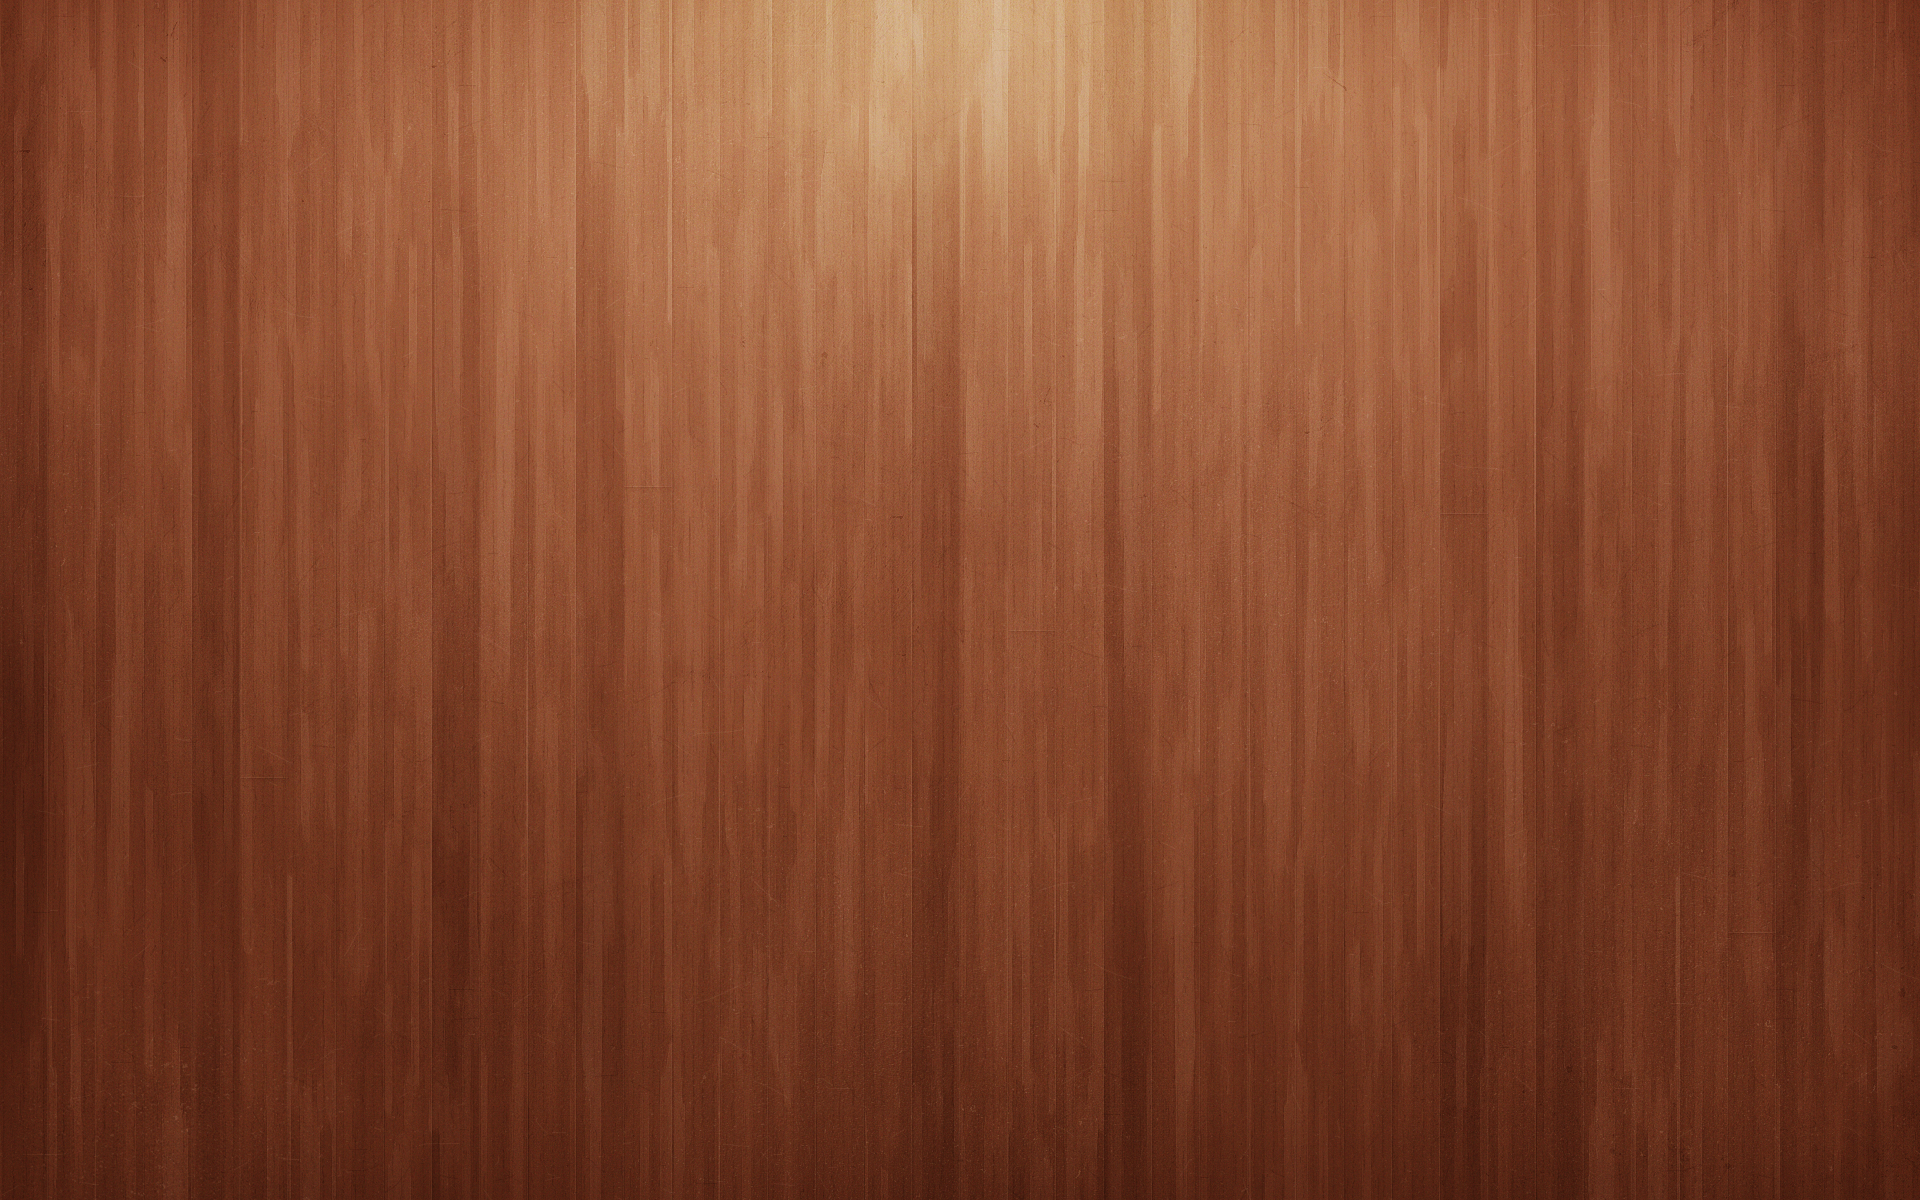 Great Wallpaper Android Wood - 15325e09b261be4dc6cfc04d6ee21f28  Pic_91255      .png